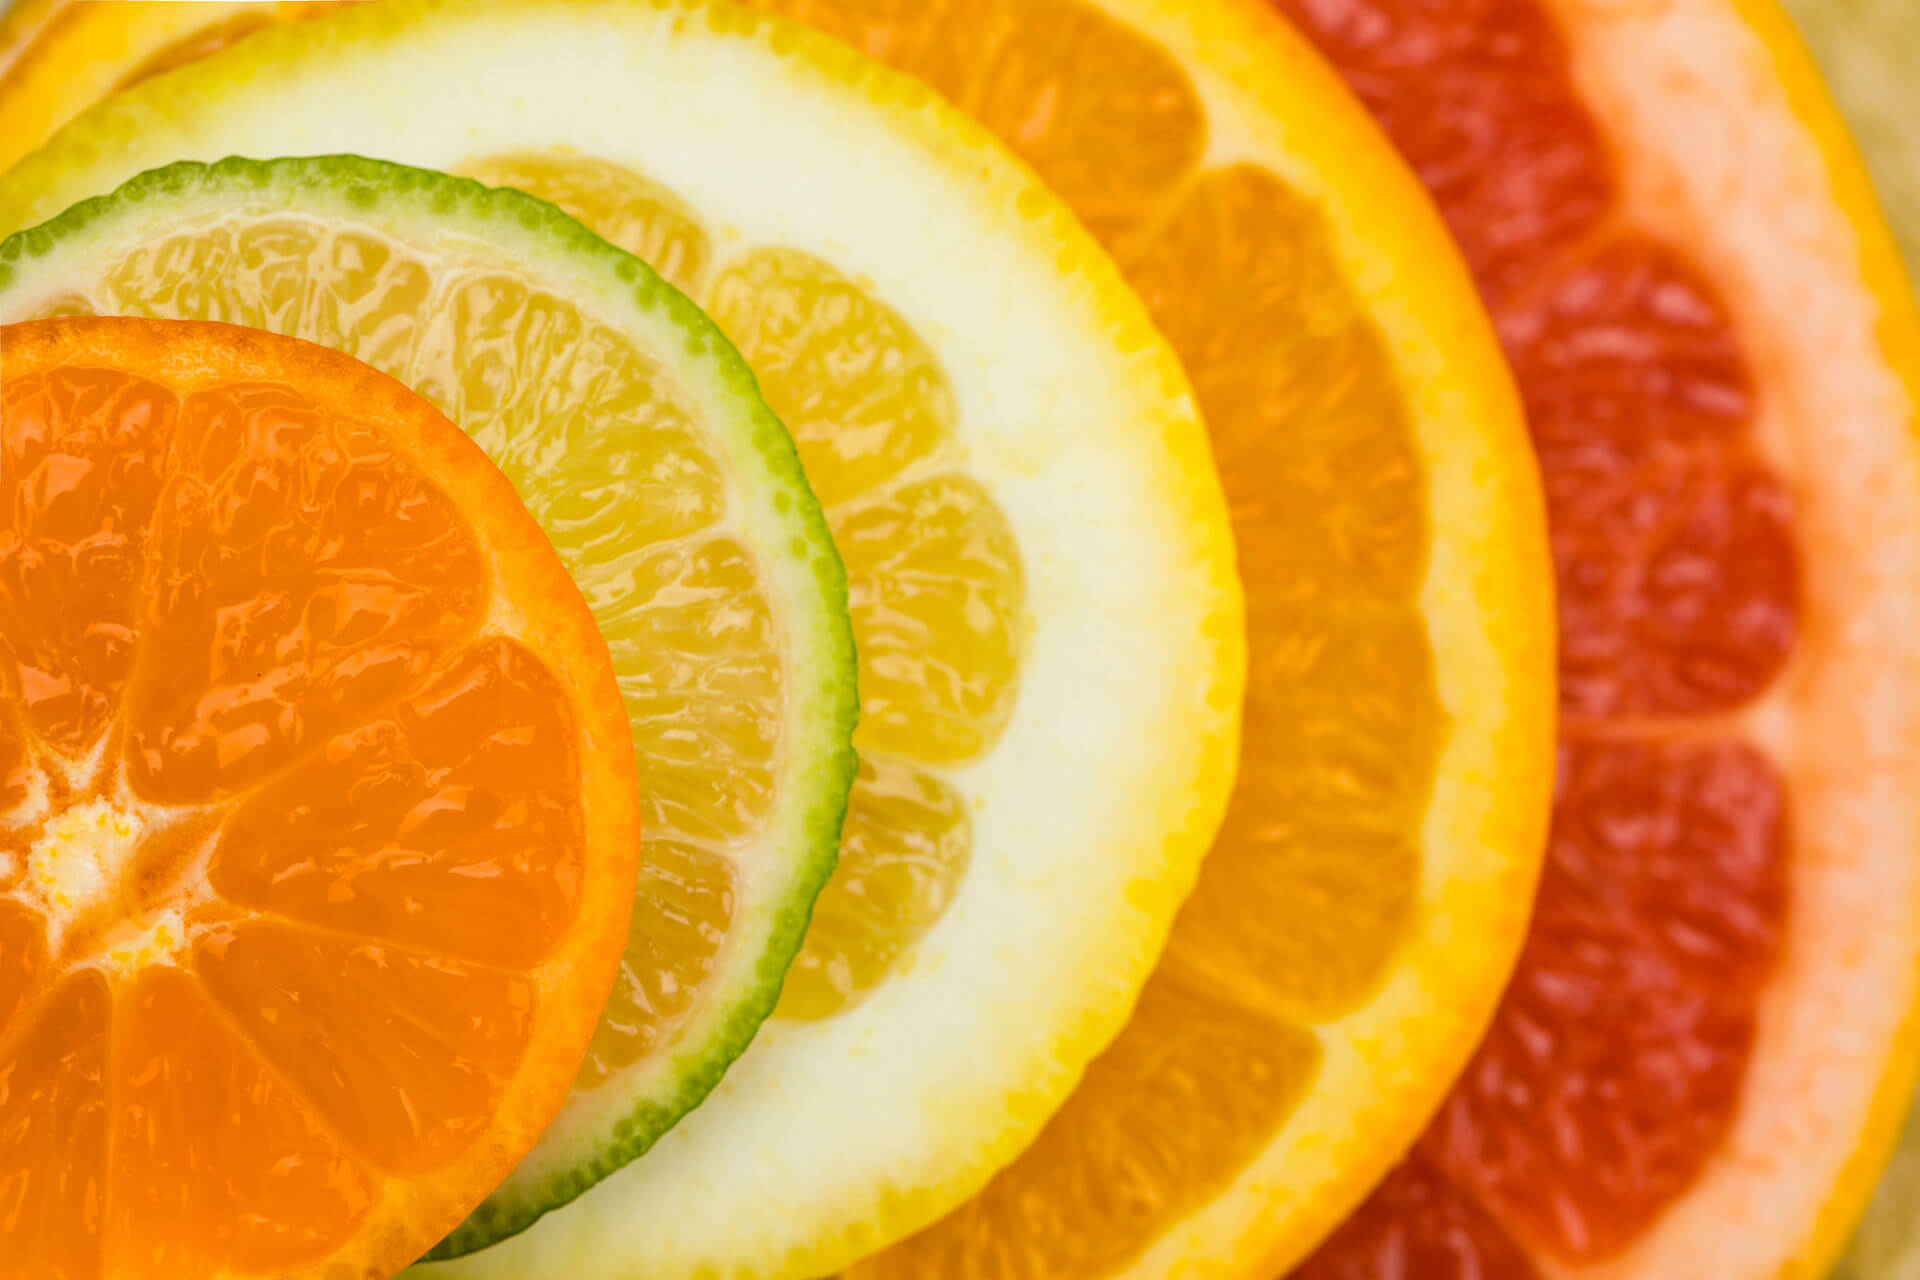 Eating Citrus Makes a Difference